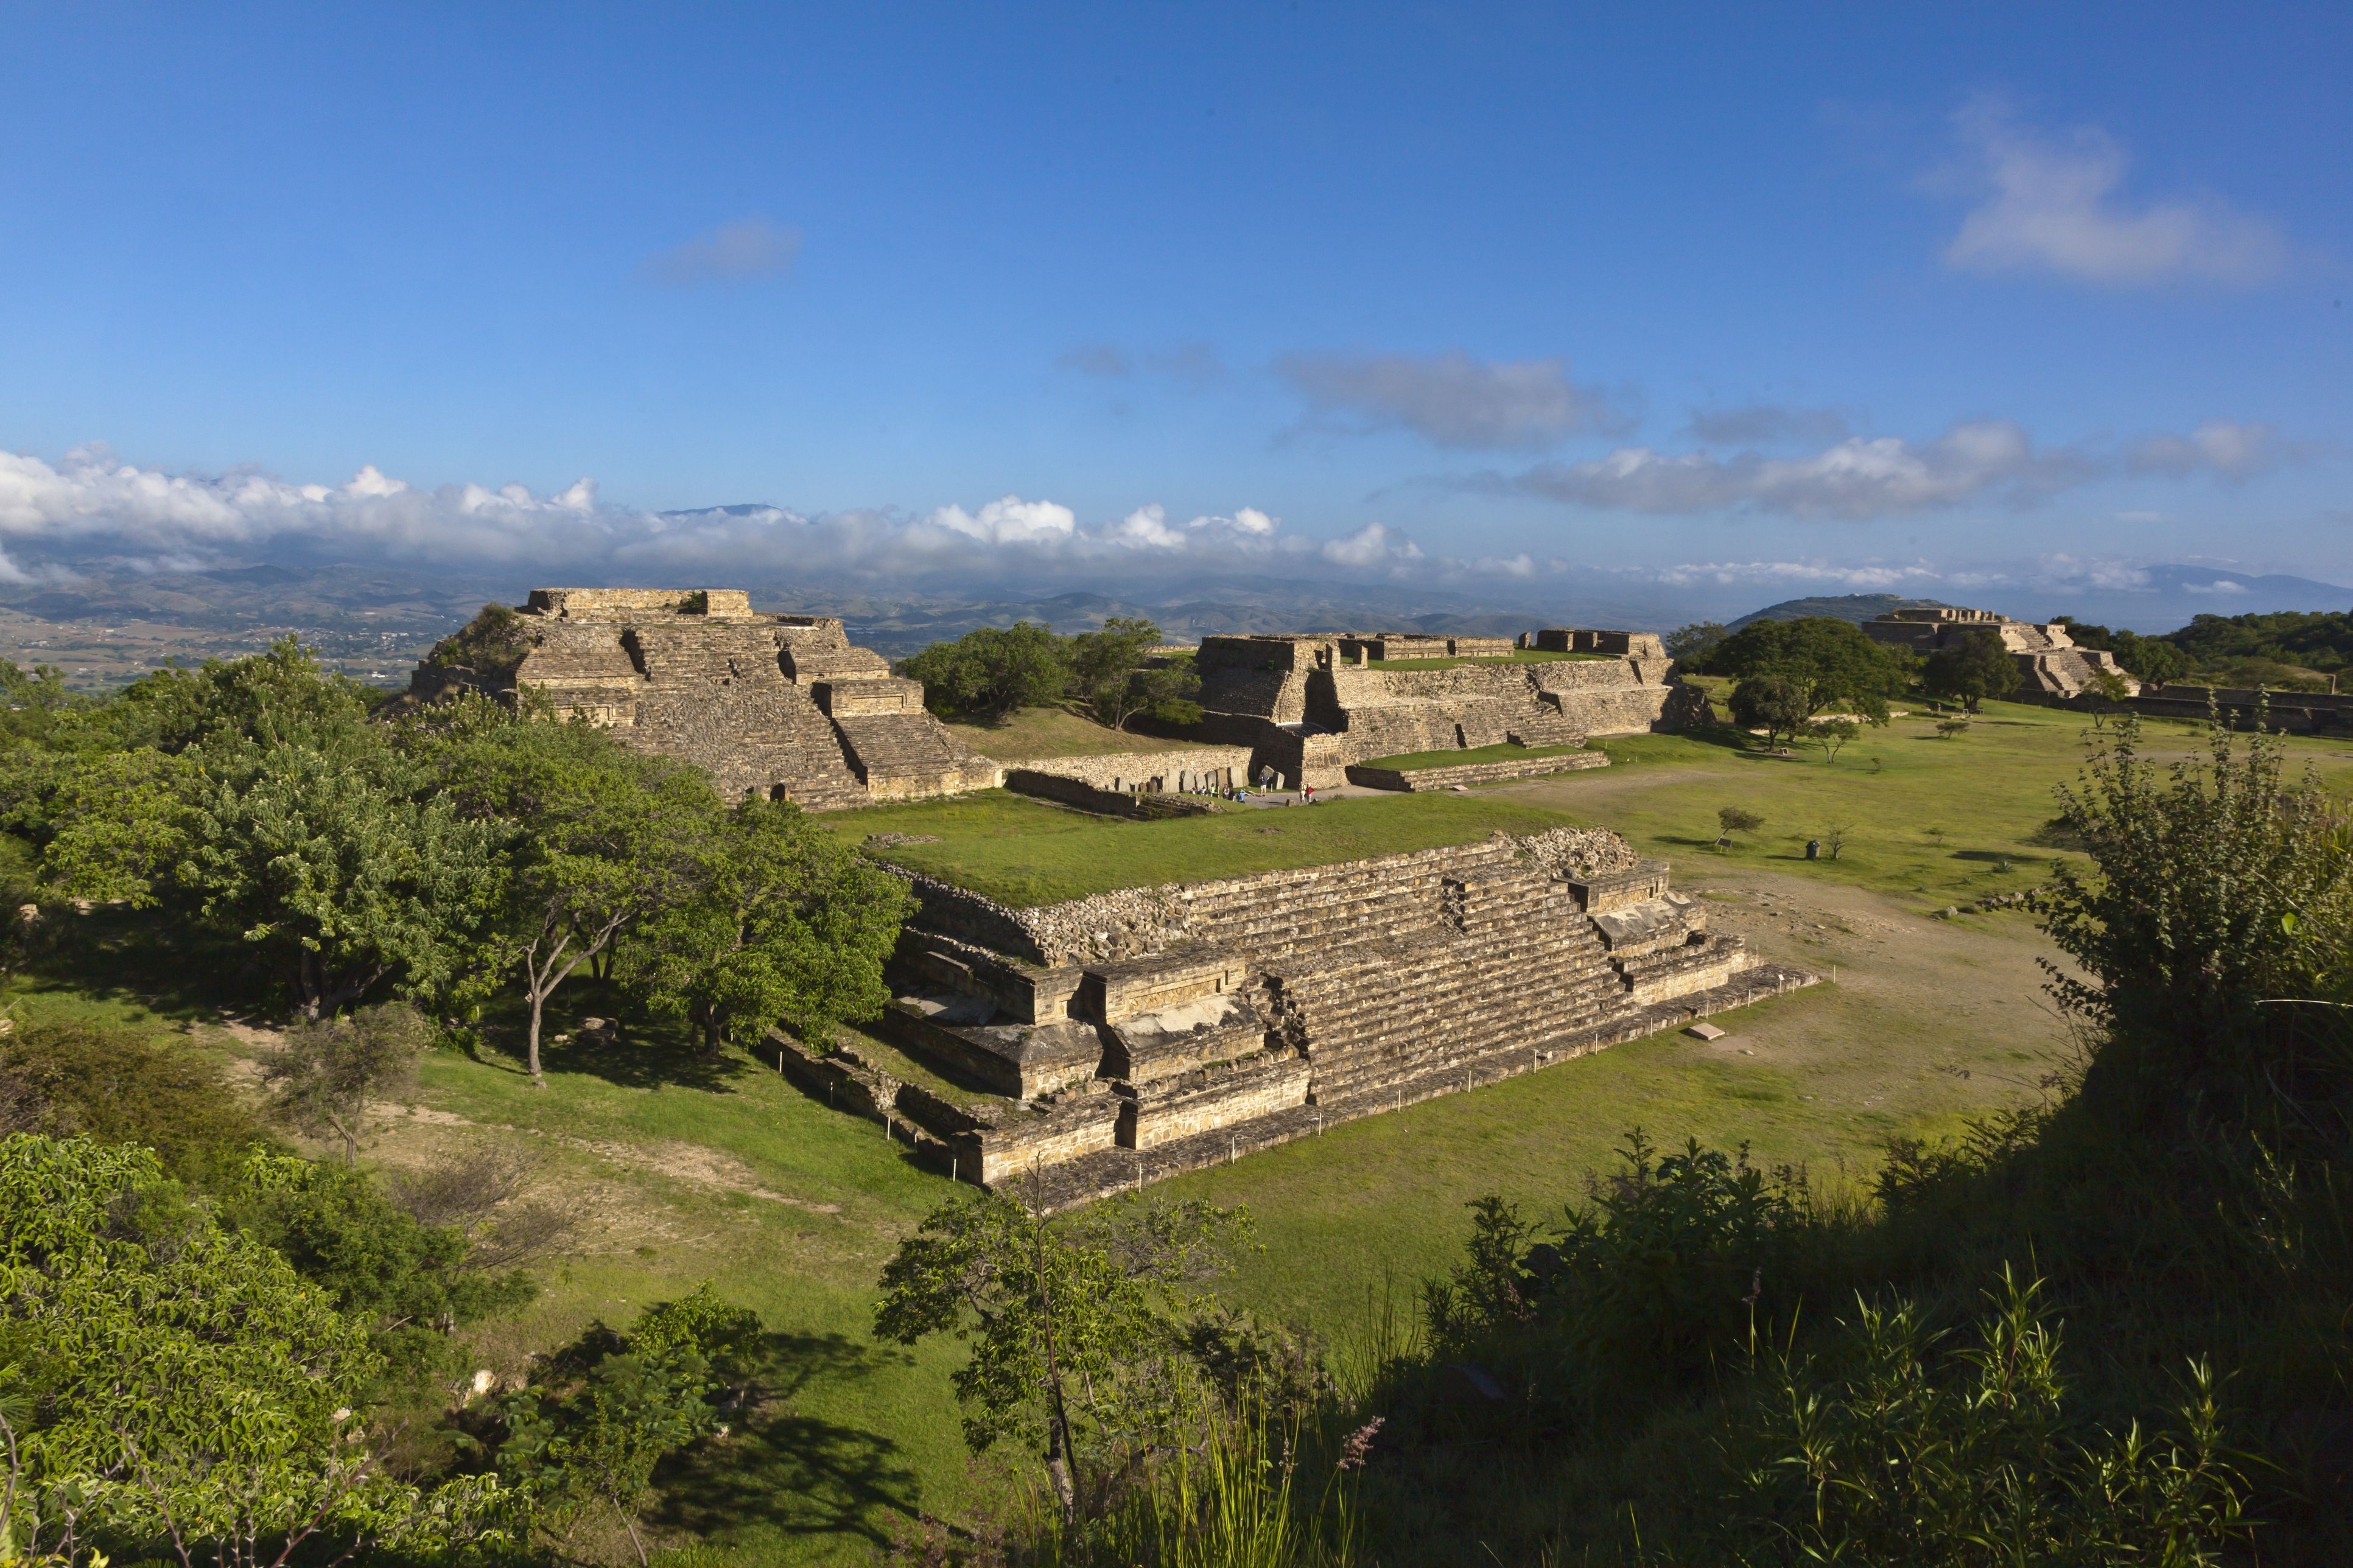 Zapotec ruins in Mexico on sunny day.